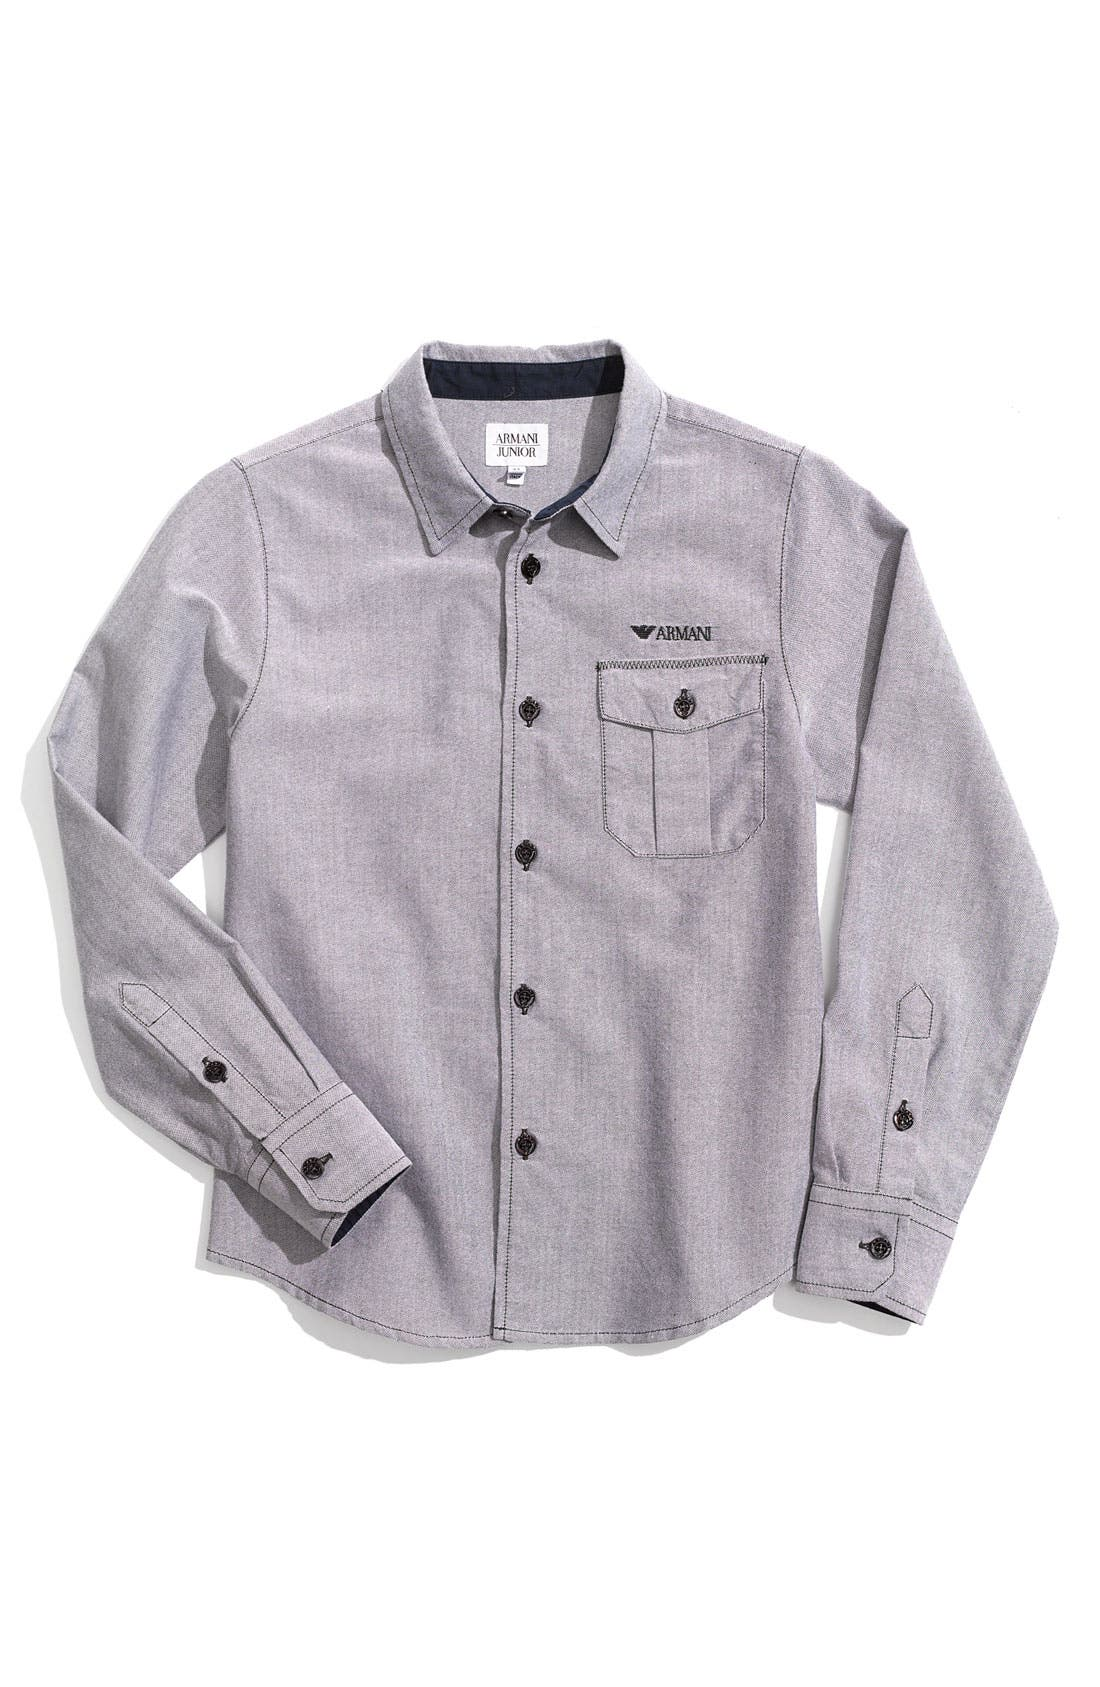 Alternate Image 1 Selected - Armani Junior Shirt (Little Boys)